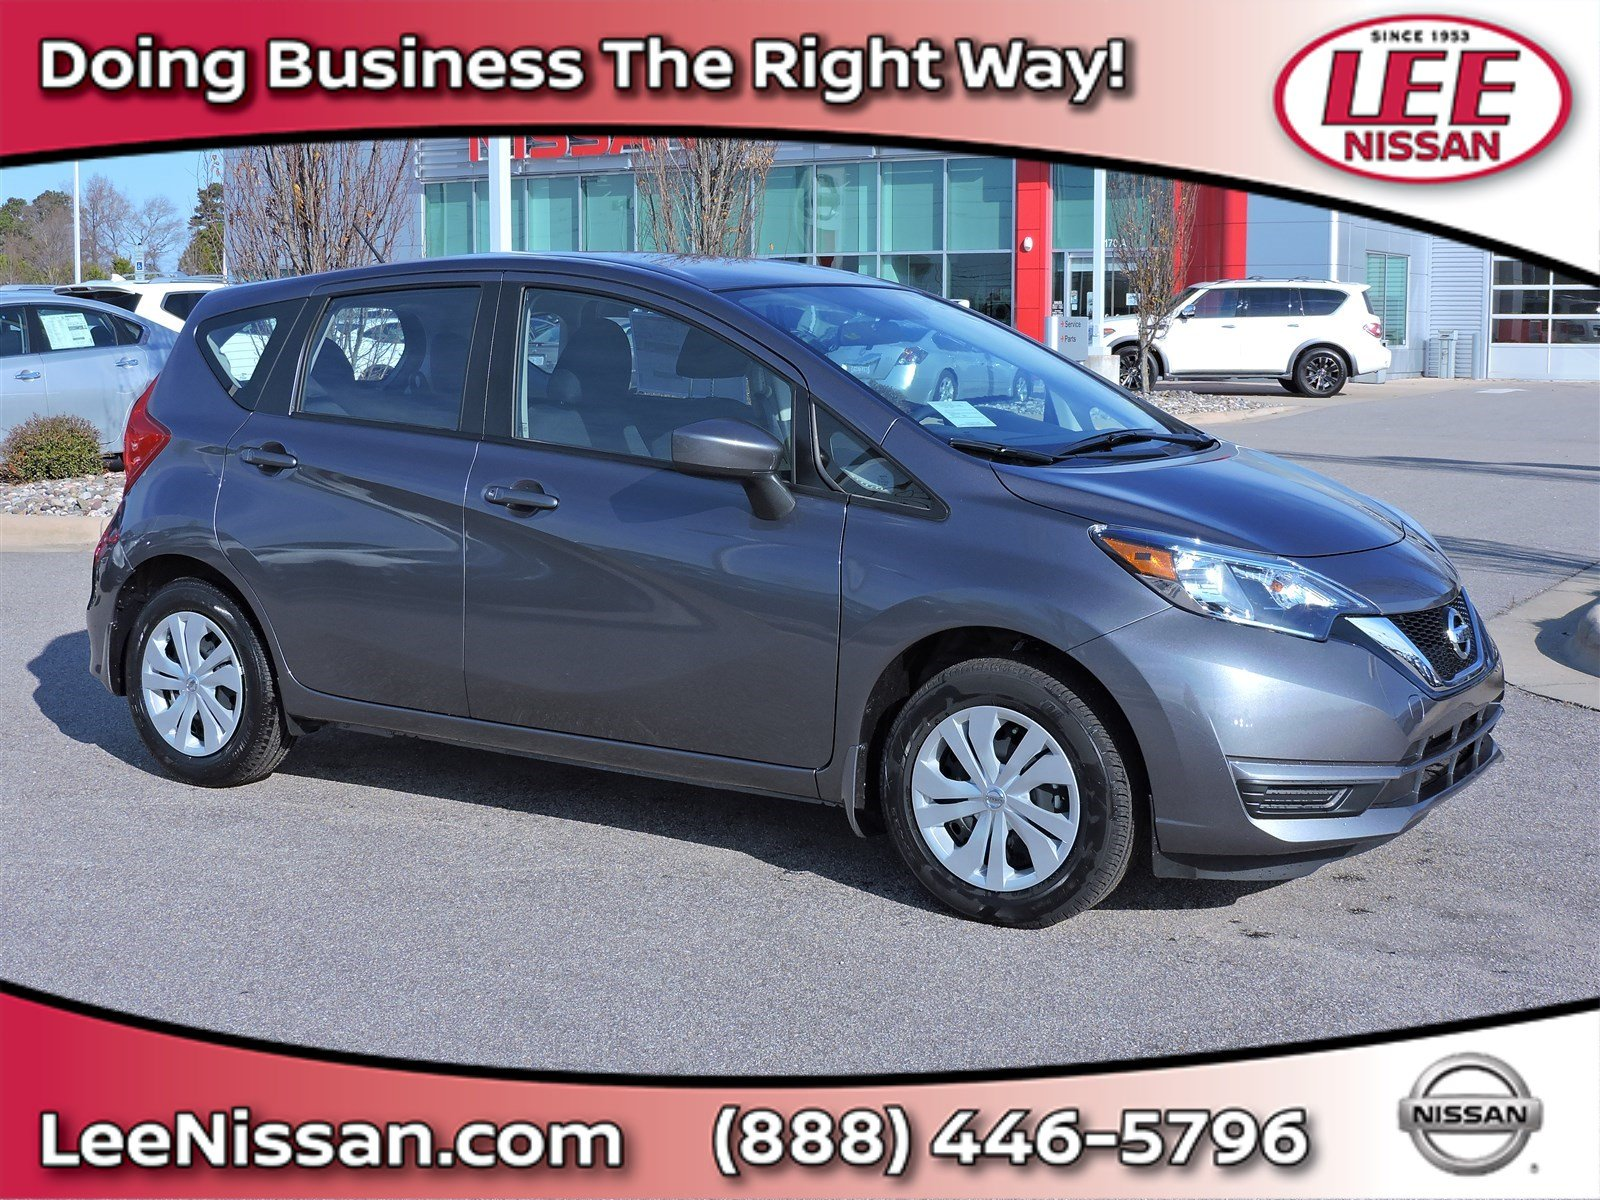 2018 Nissan Versa Note S S CVT for sale in Wilson, NC.